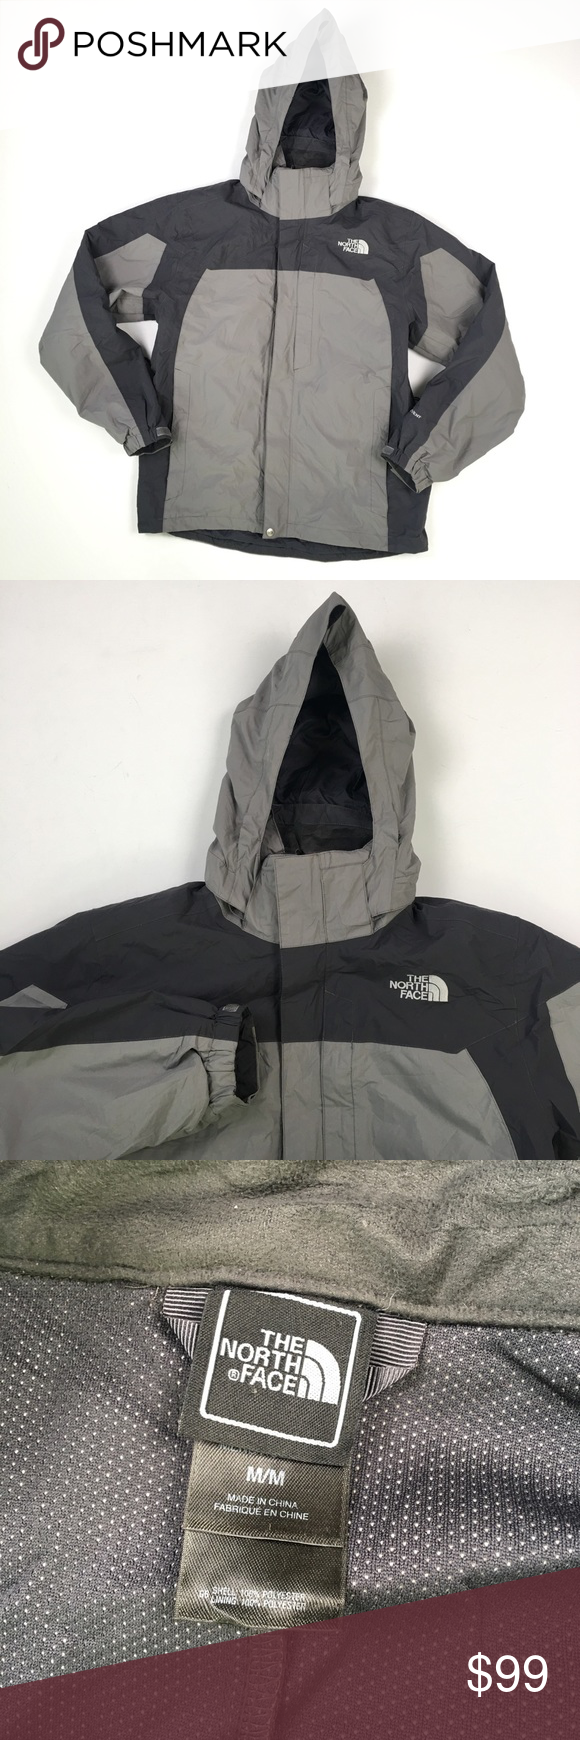 North Face Grey Hyvent Mens 3 In 1 Jacket M B6607 3 In 1 Jacket Jackets The North Face [ 1740 x 580 Pixel ]